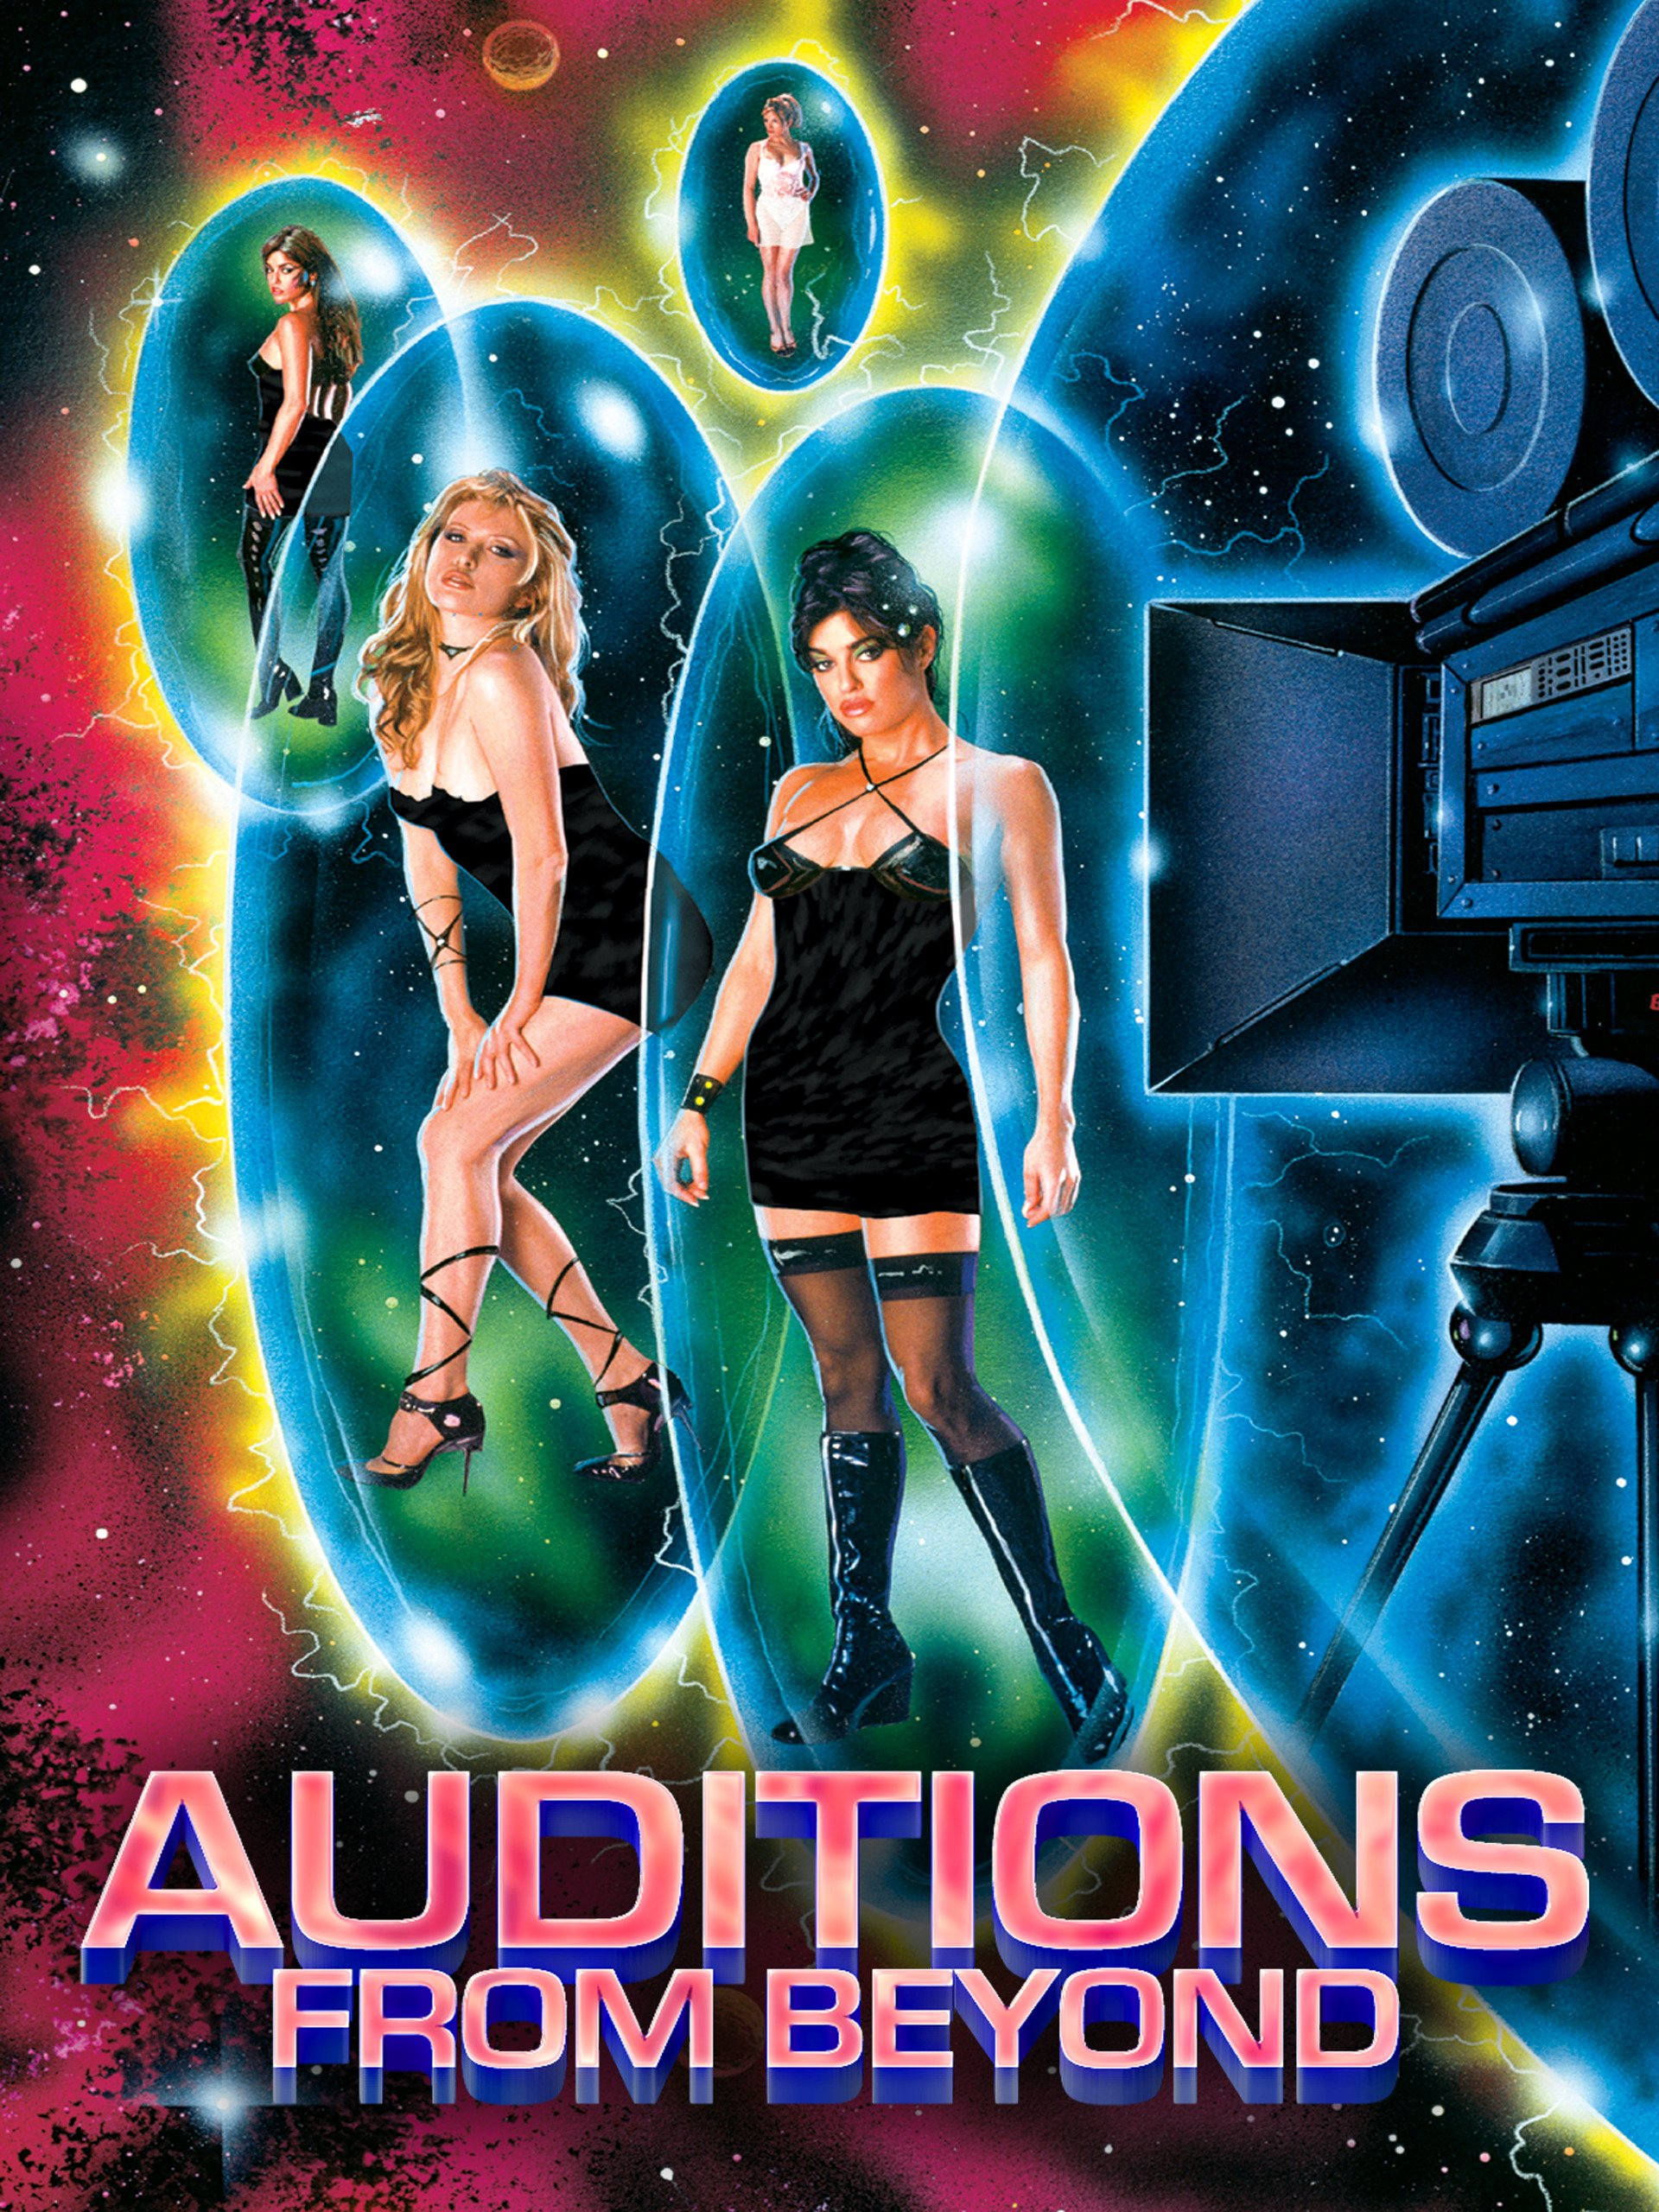 Amazon.com: Auditions From Beyond: Jacqueline Lovell , Venesa Talor ...